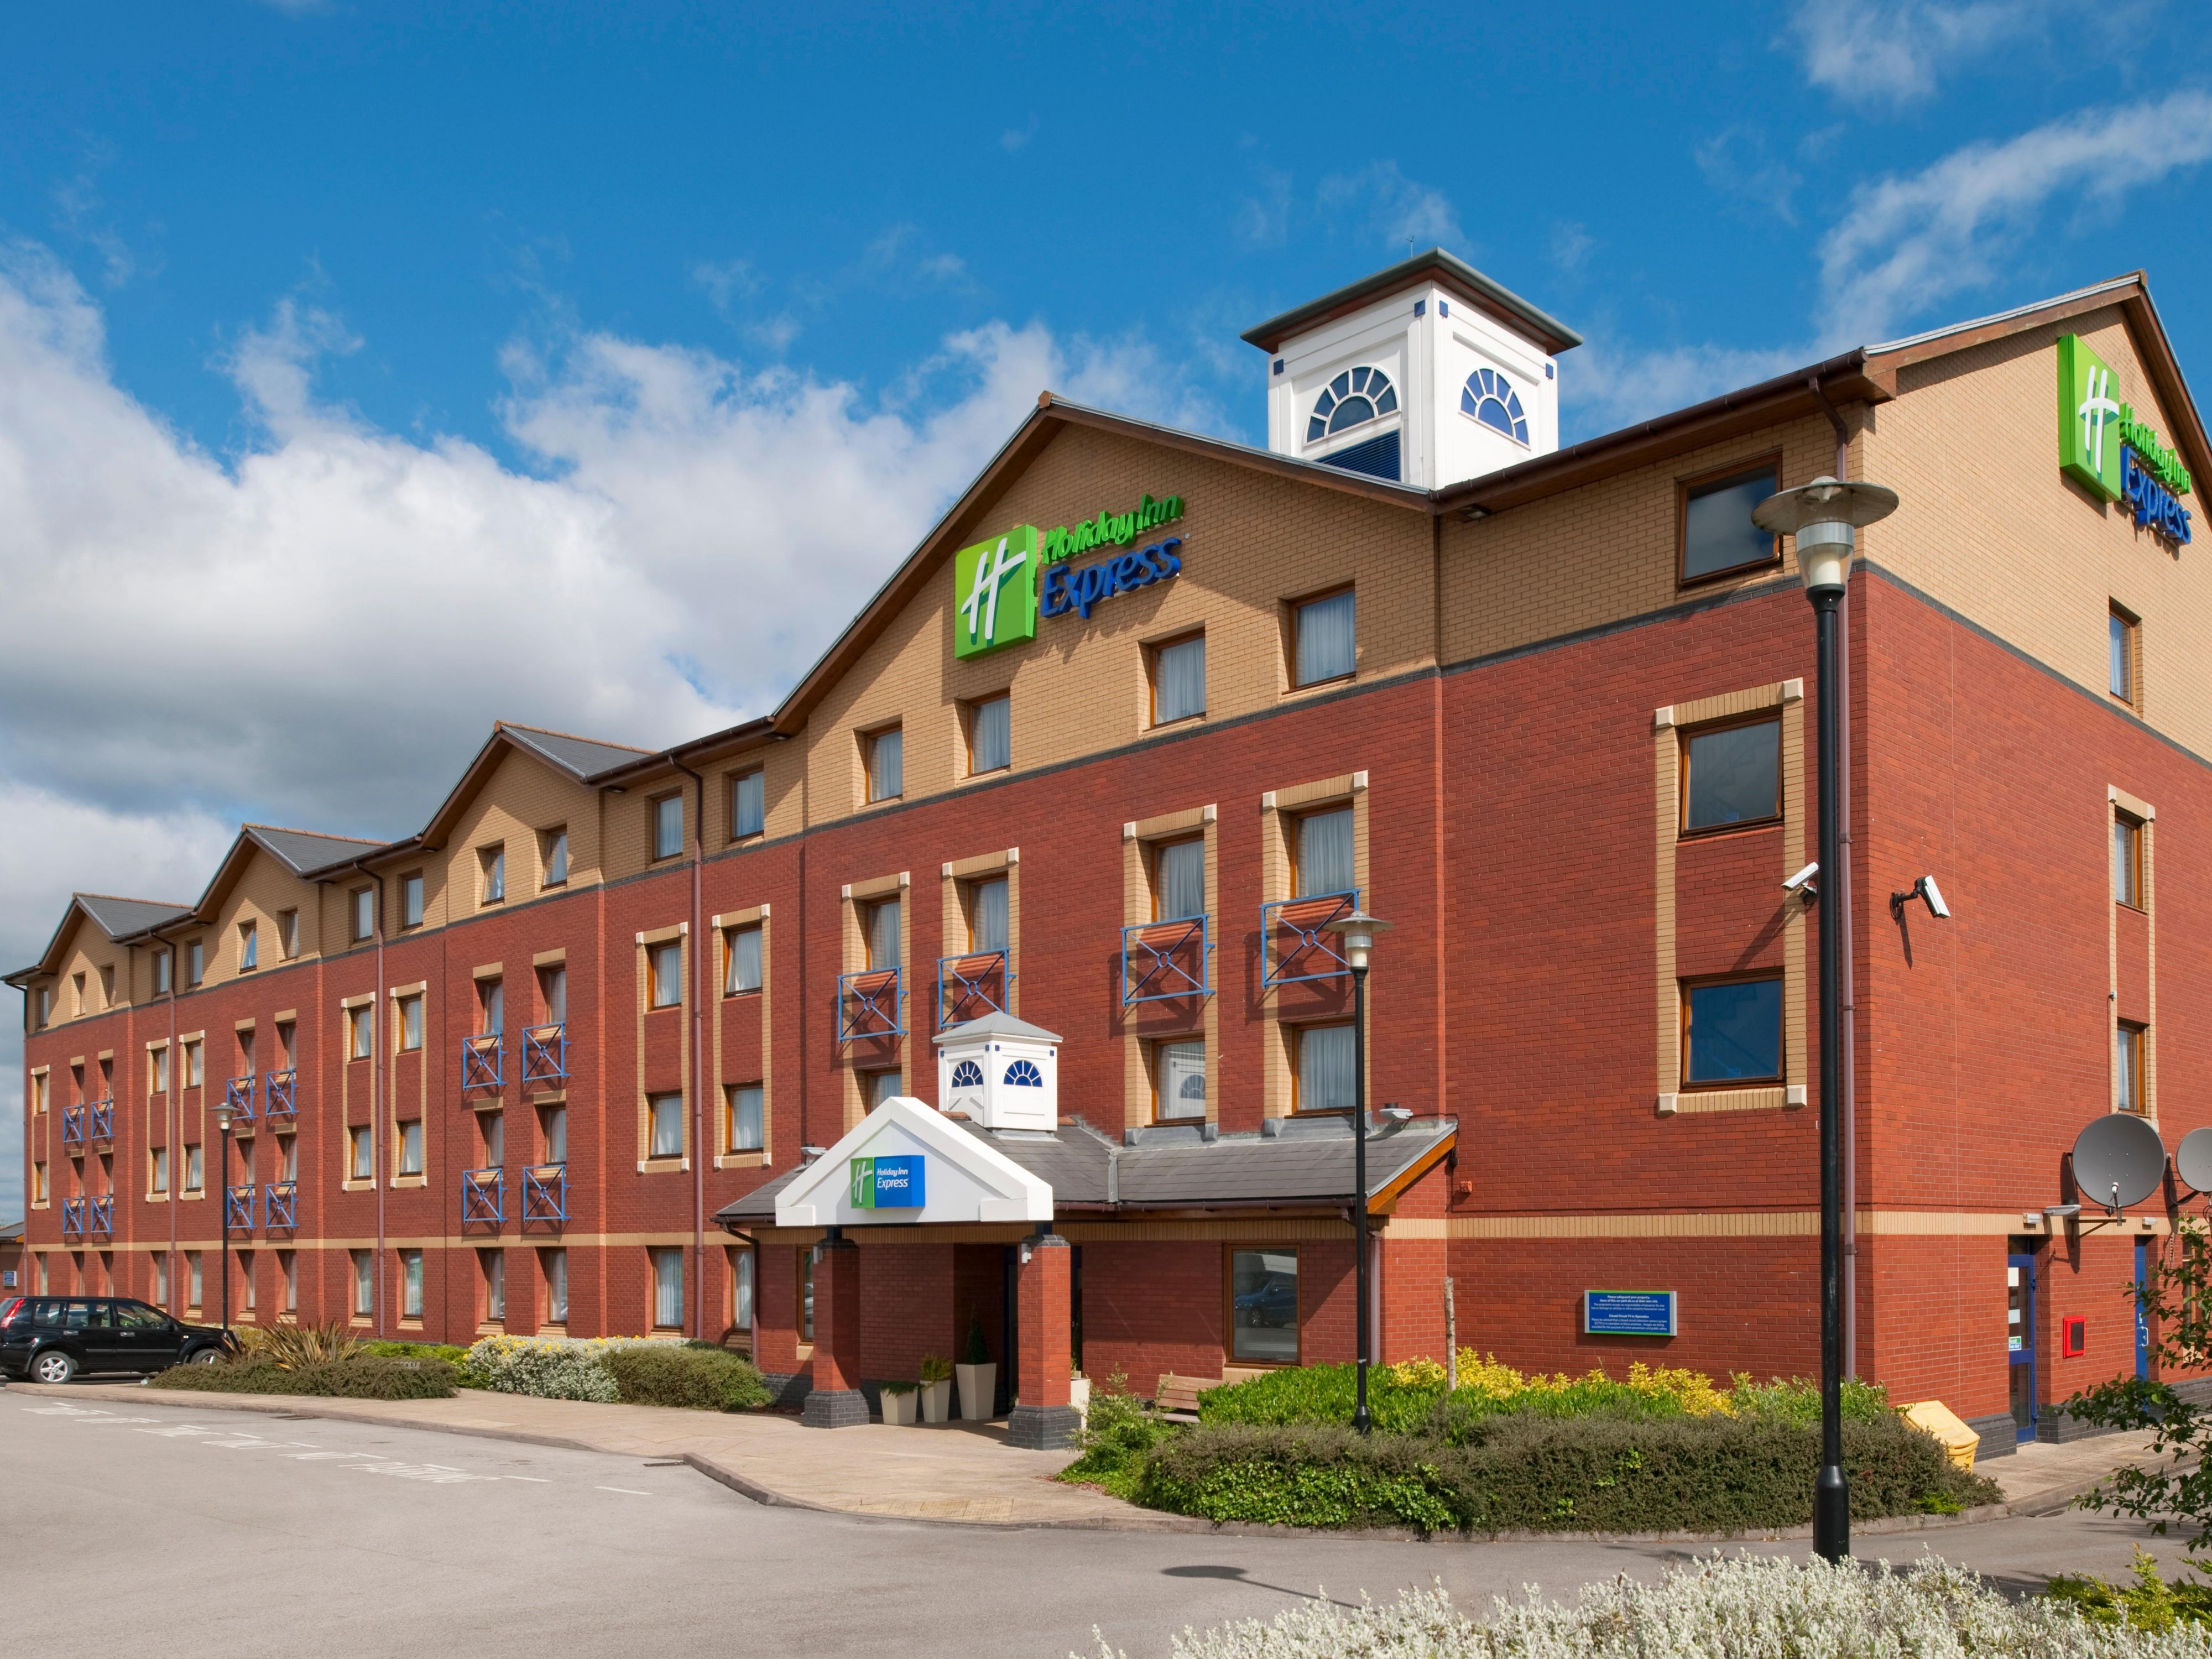 Hotels Near Britannia Stadium Stoke On Trent